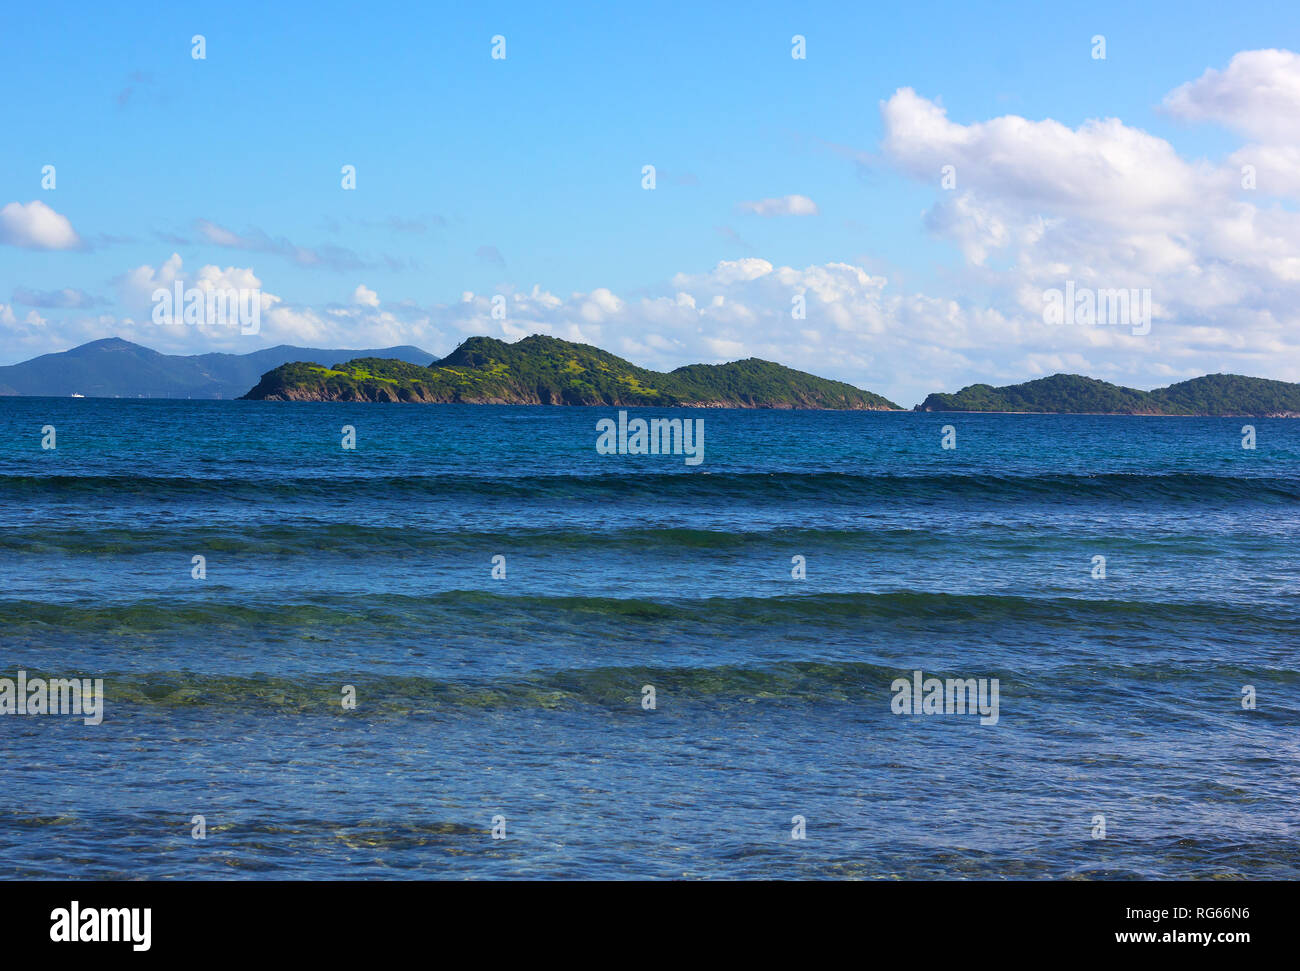 Gentle waves rolling onto a shore of St. Thomas island beach in winter. Warm welcoming waters of Caribbean Sea with a view on mountainous islands on h Stock Photo